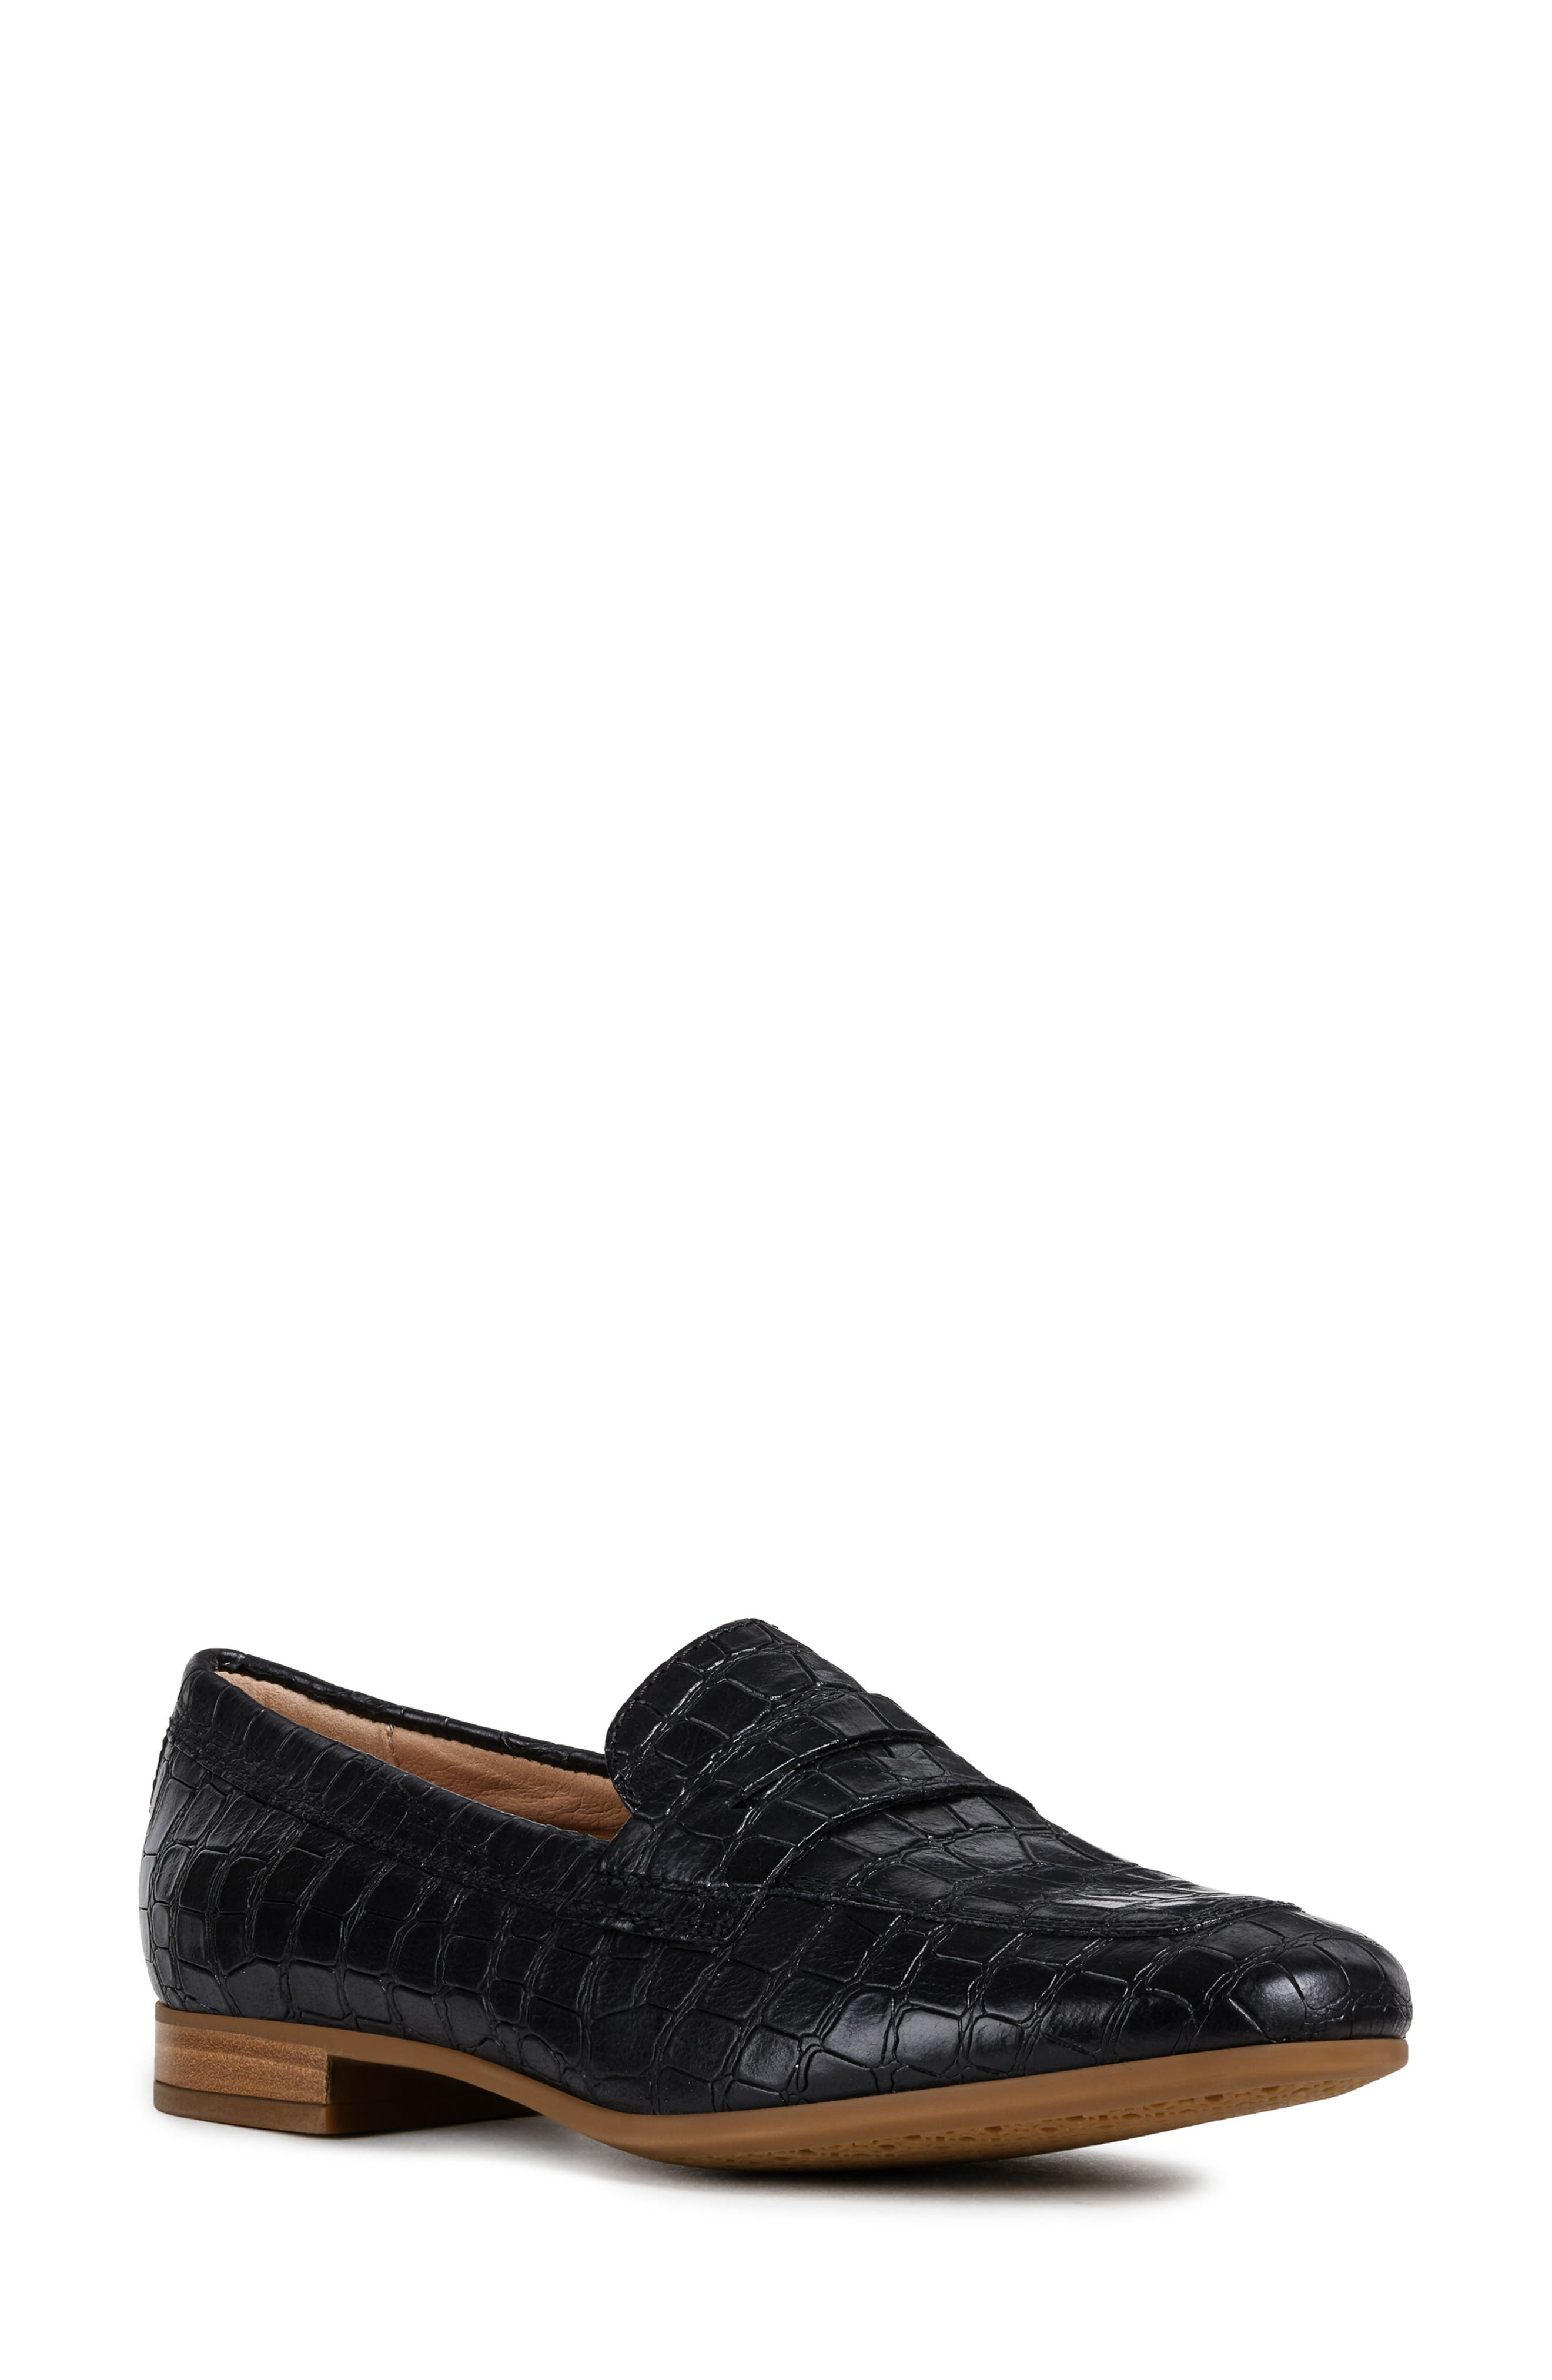 Geox Marlyna Loafer, Black